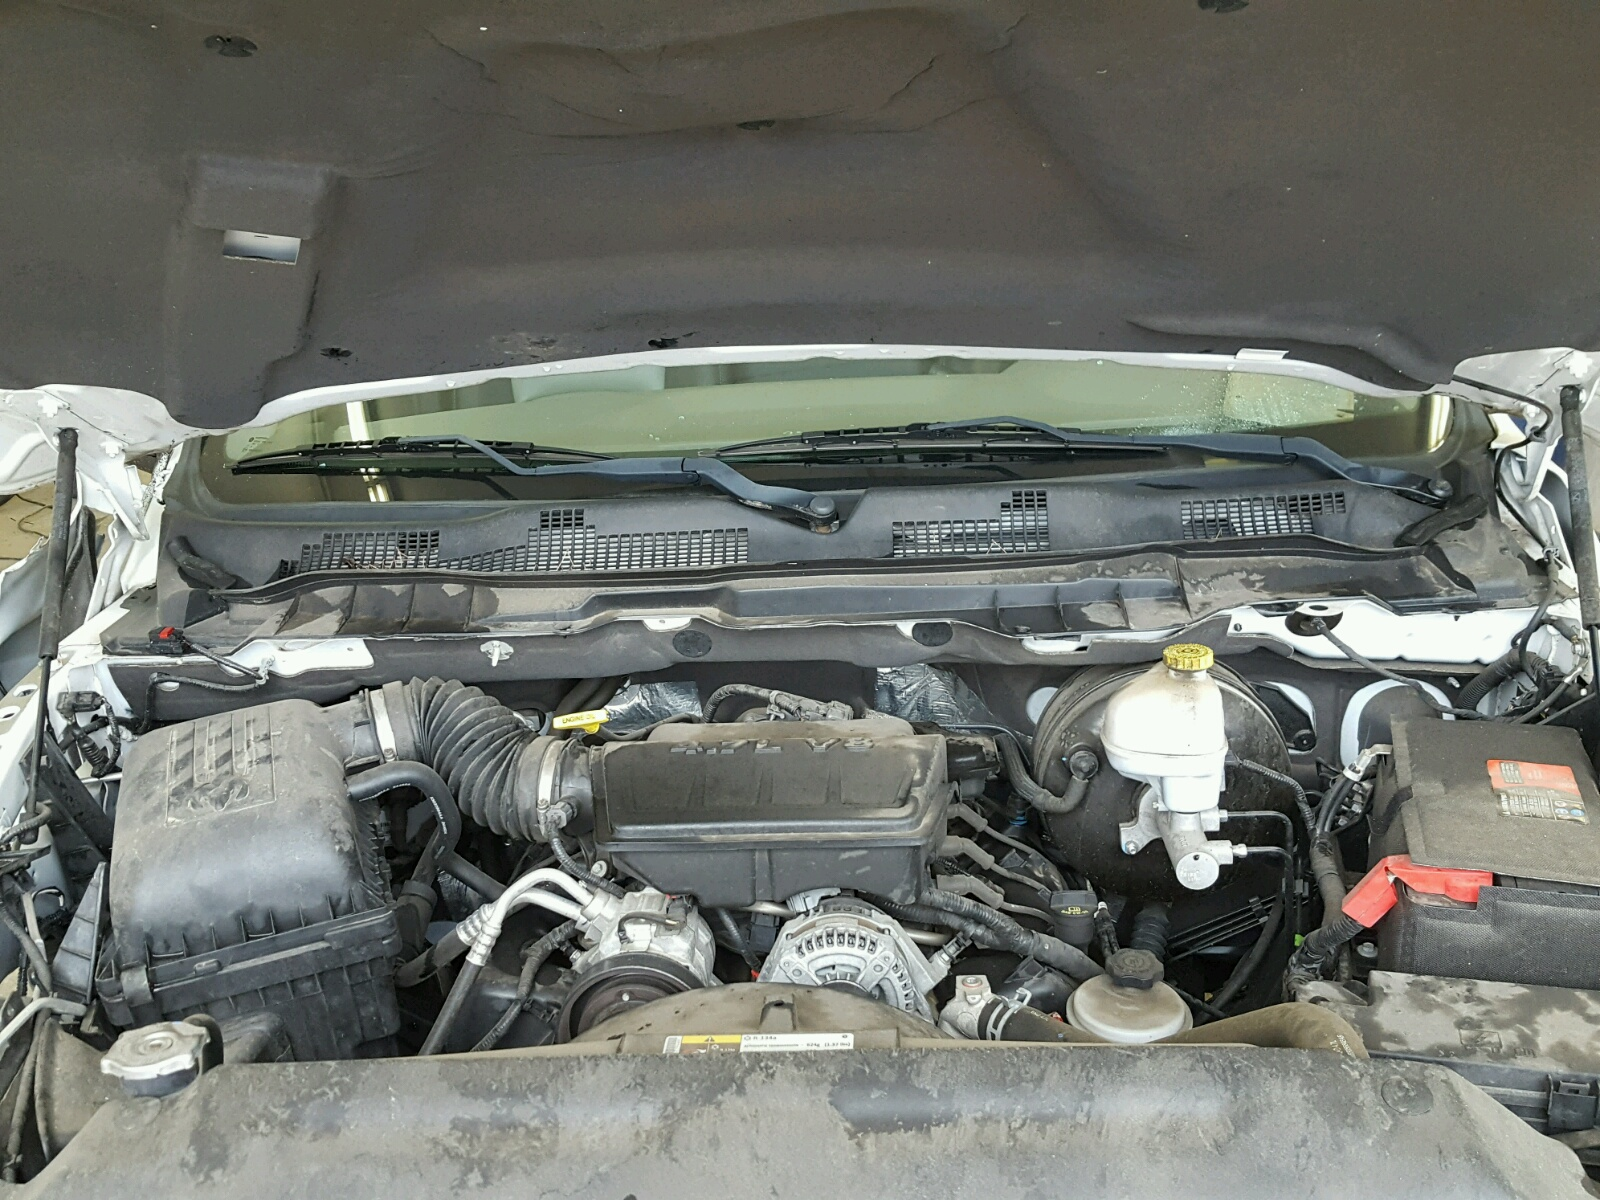 1c6rd7fp9cs252189 2012 White Dodge Ram 1500 S On Sale In Tn Engine 47l Inside View